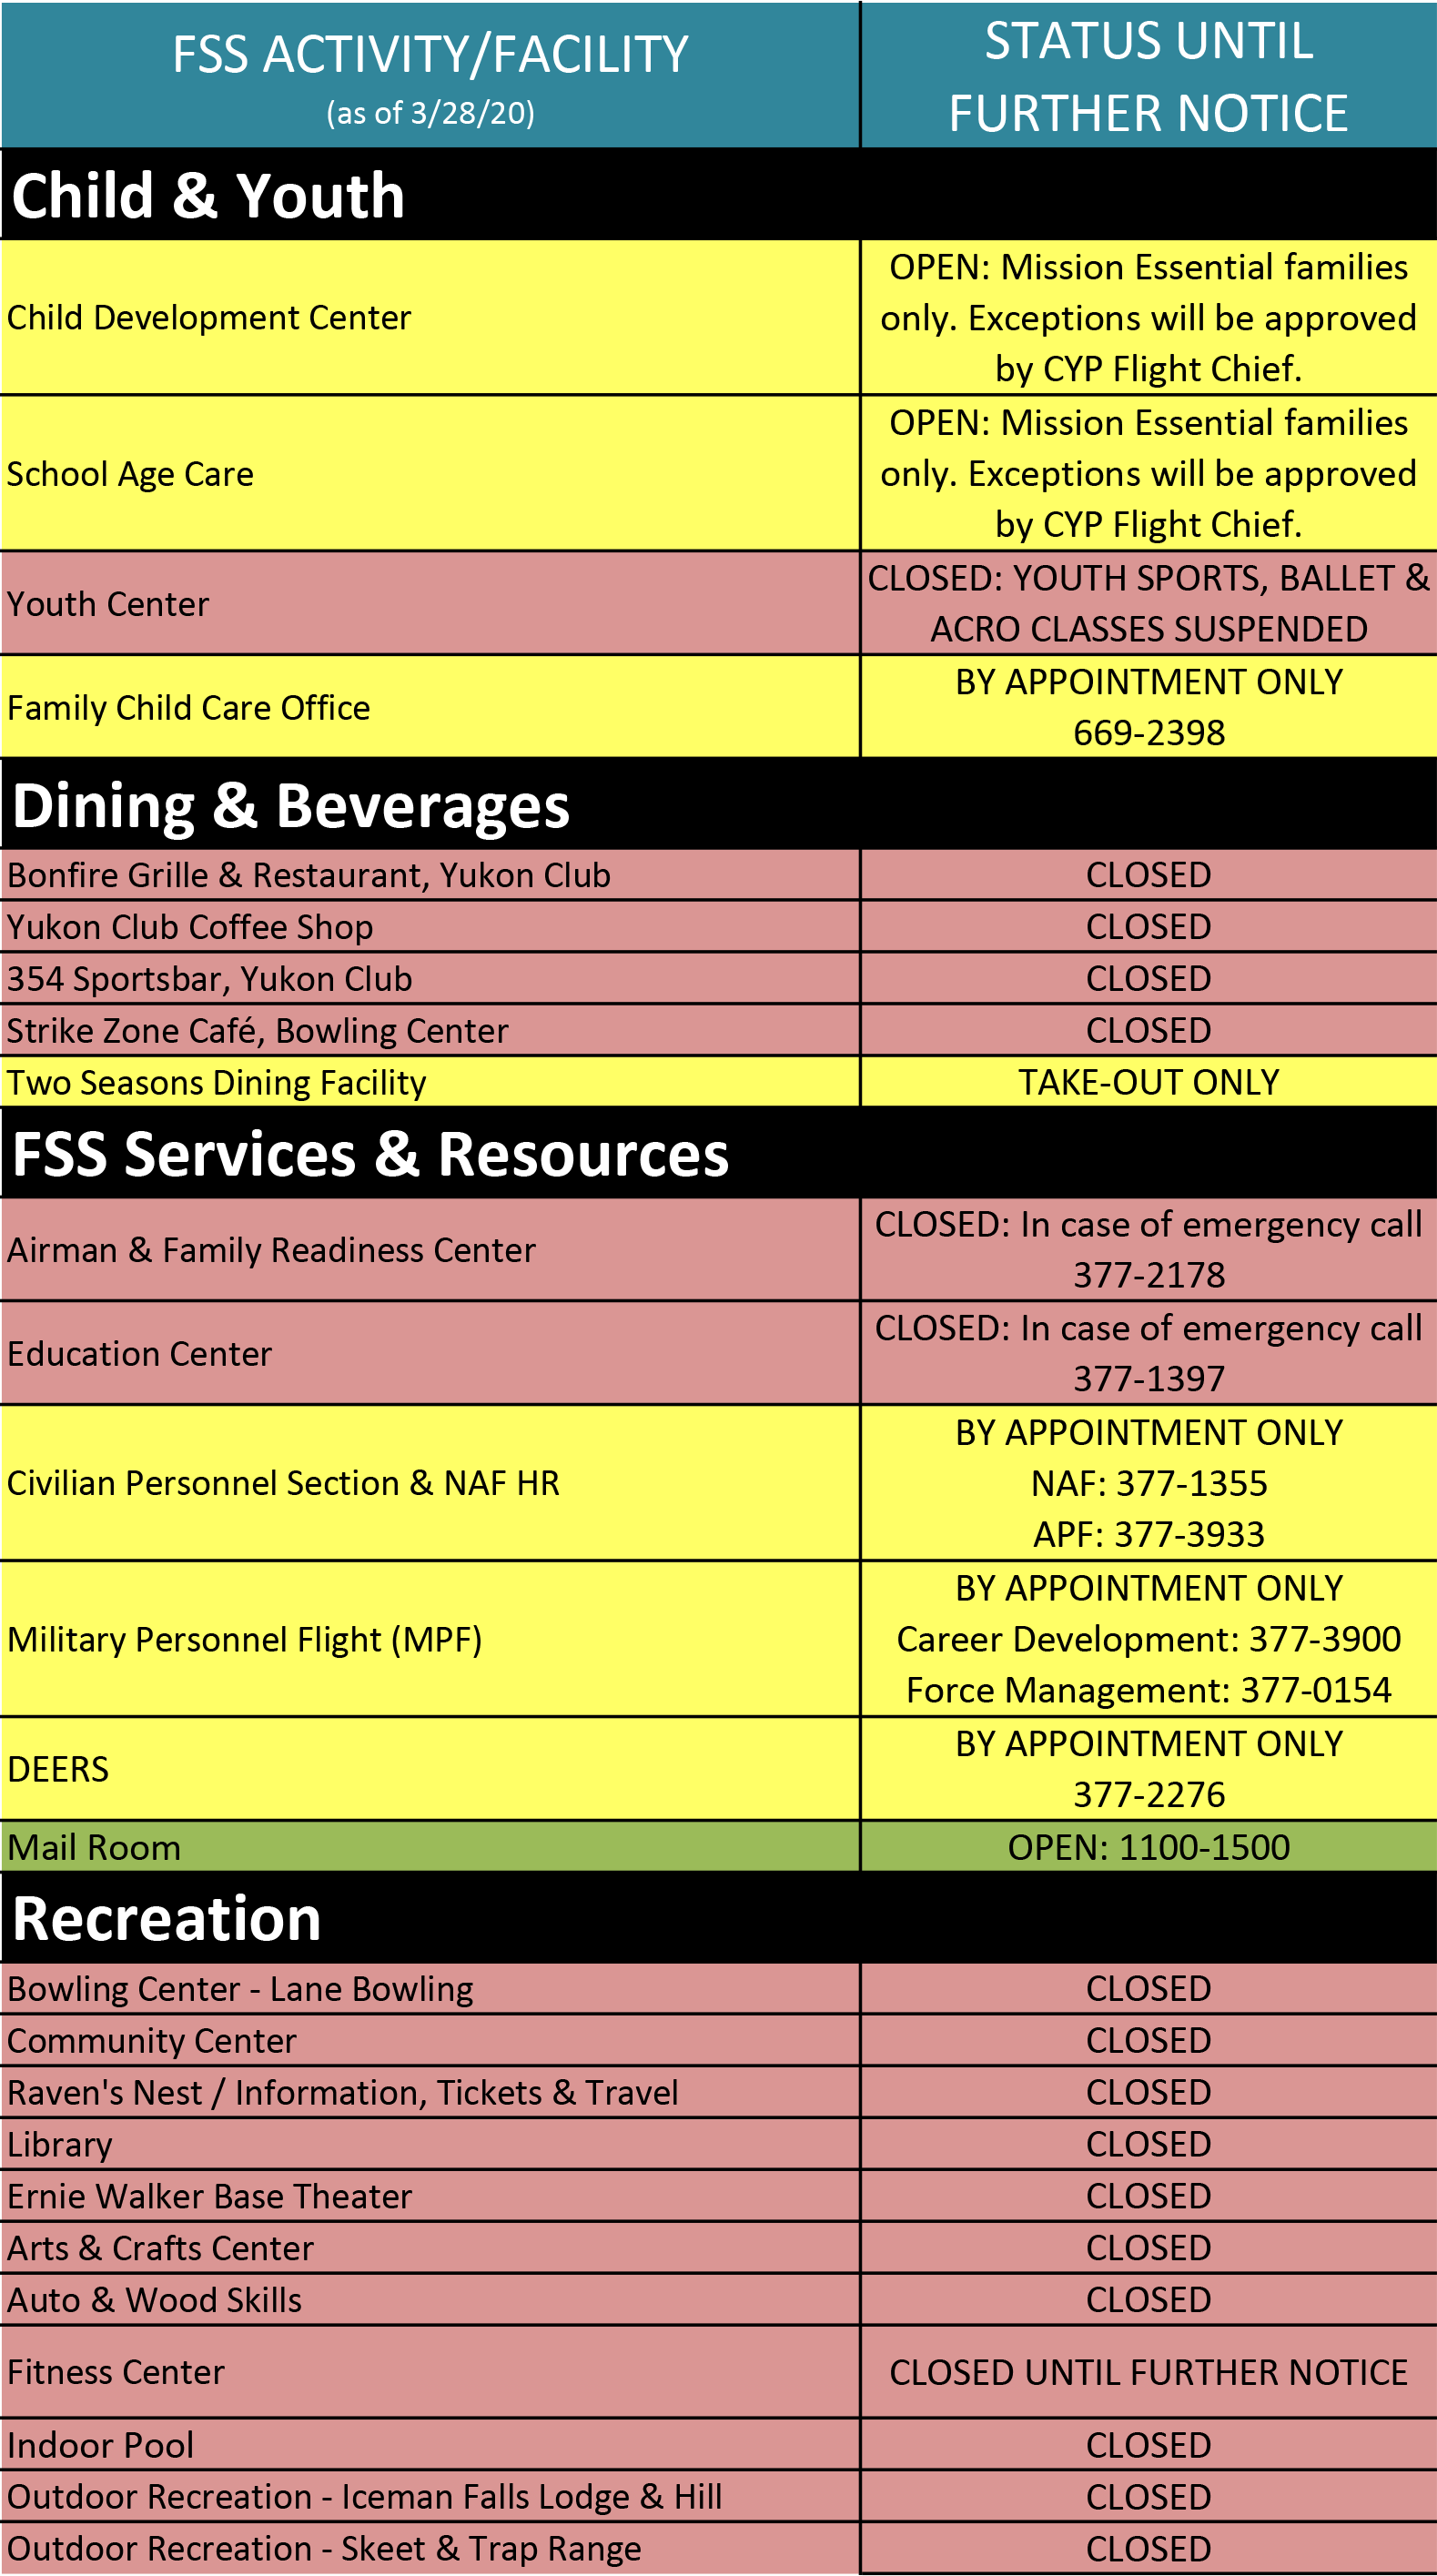 FSS Facilities Hours of Operation 3.28.20